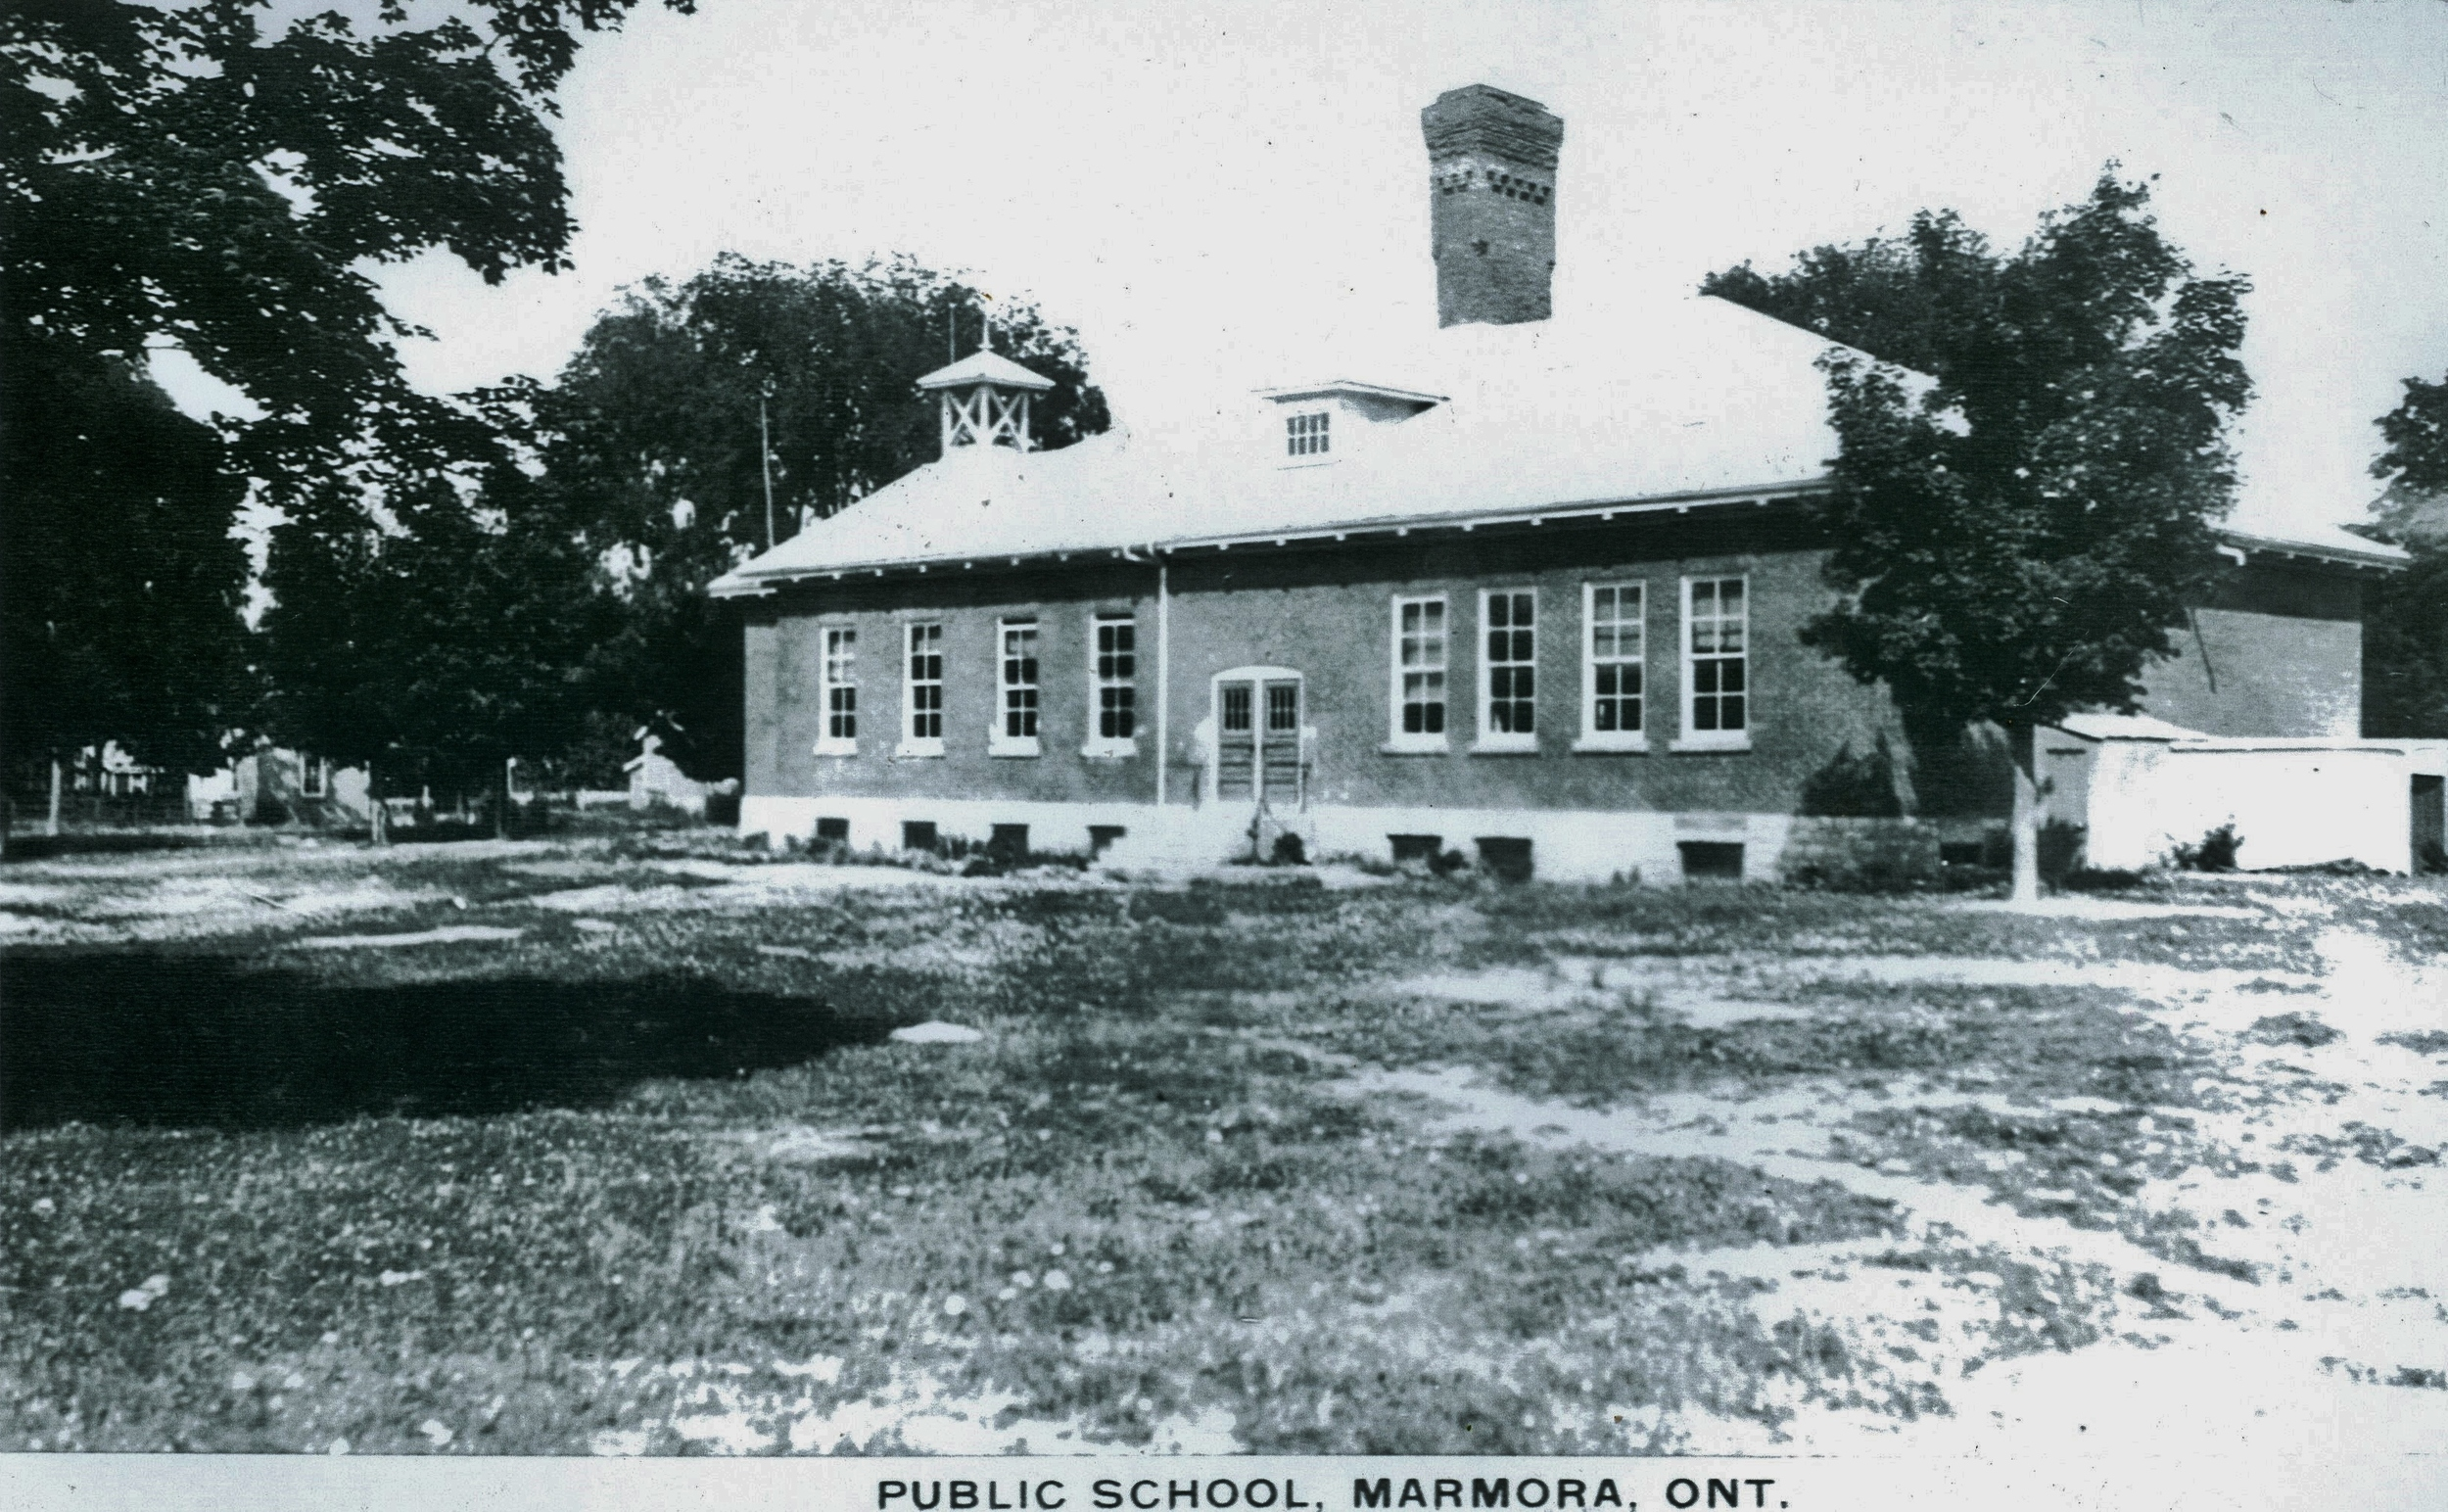 In 1915 the original structure (see above ) burned and this building was constructed from the remains of the first floor. Note school bell and large chimney. Photo taken before extension built.